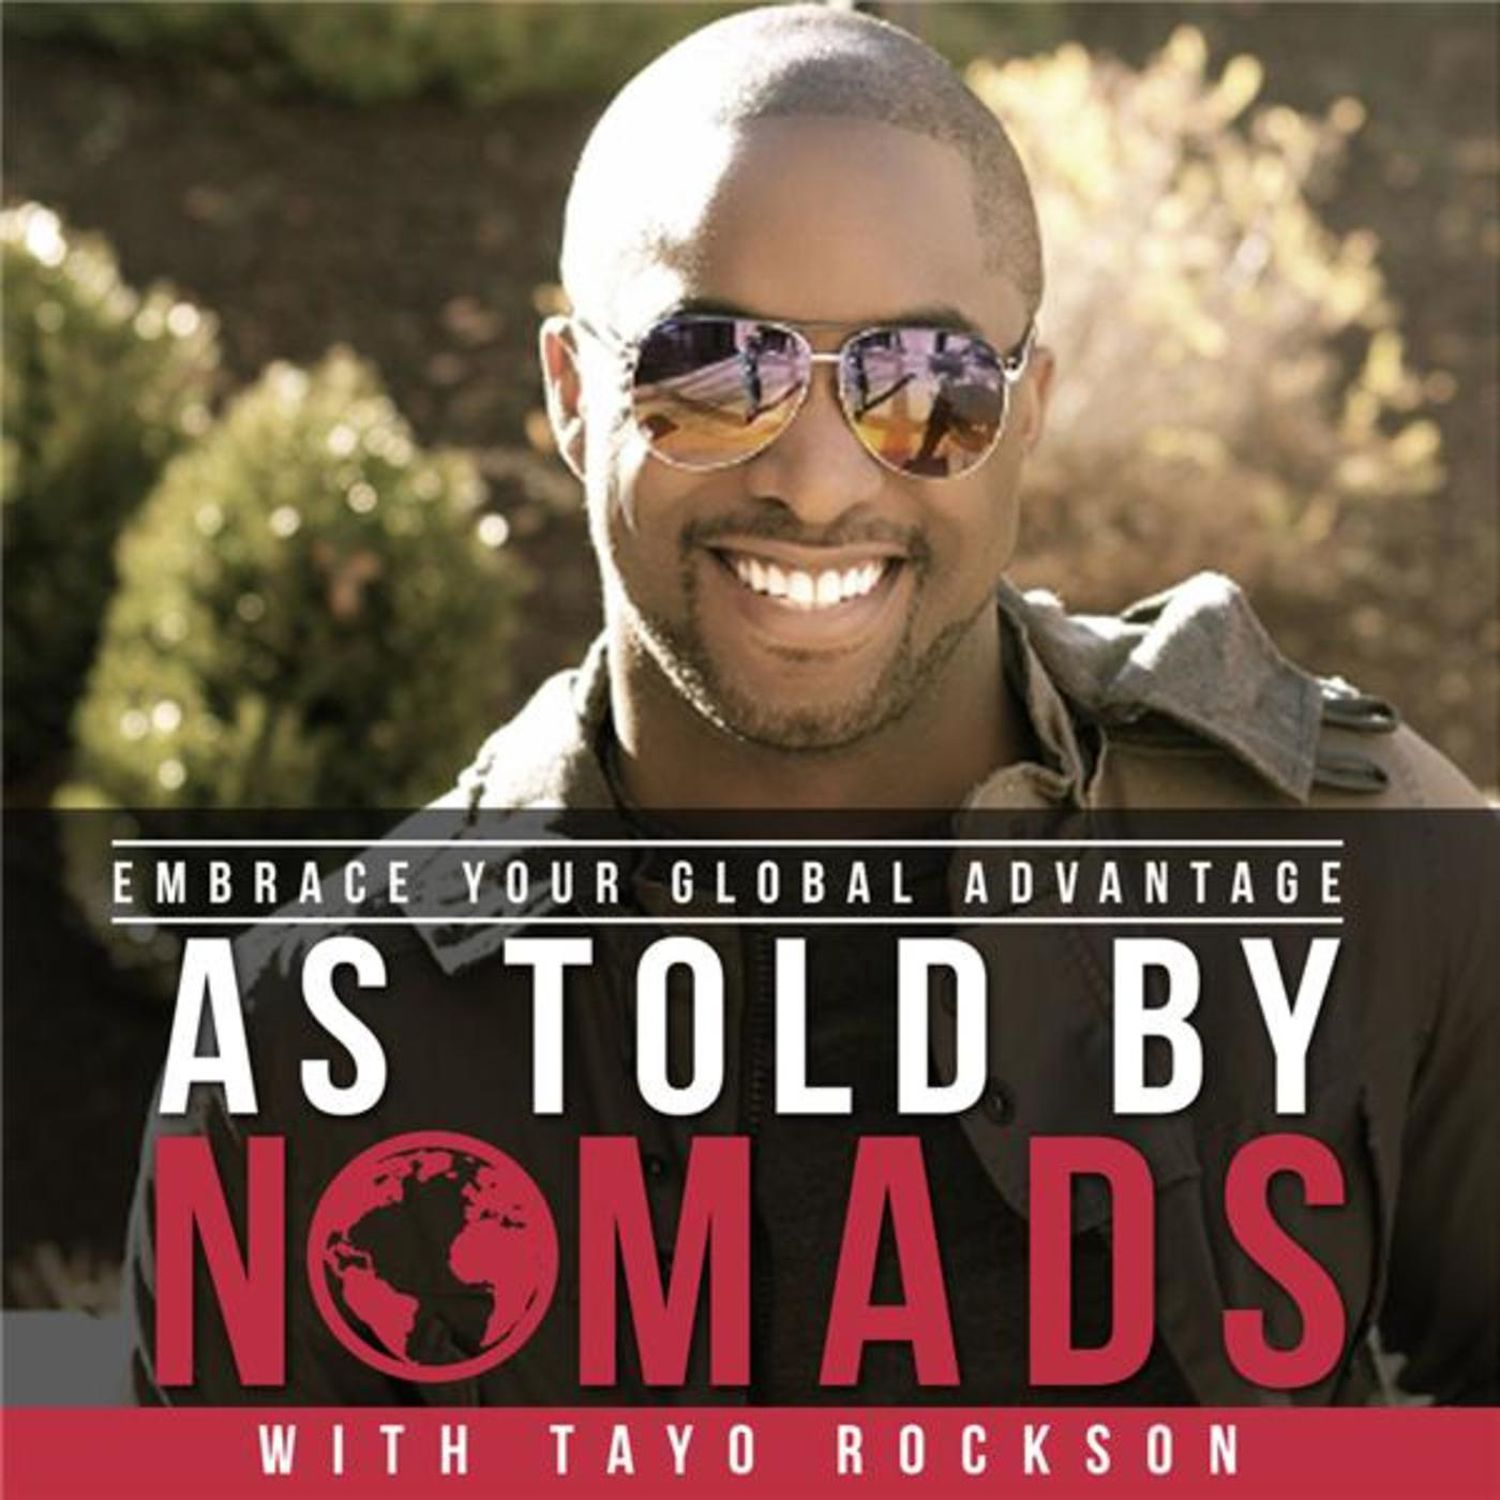 As told by nomads travel podcasts logo